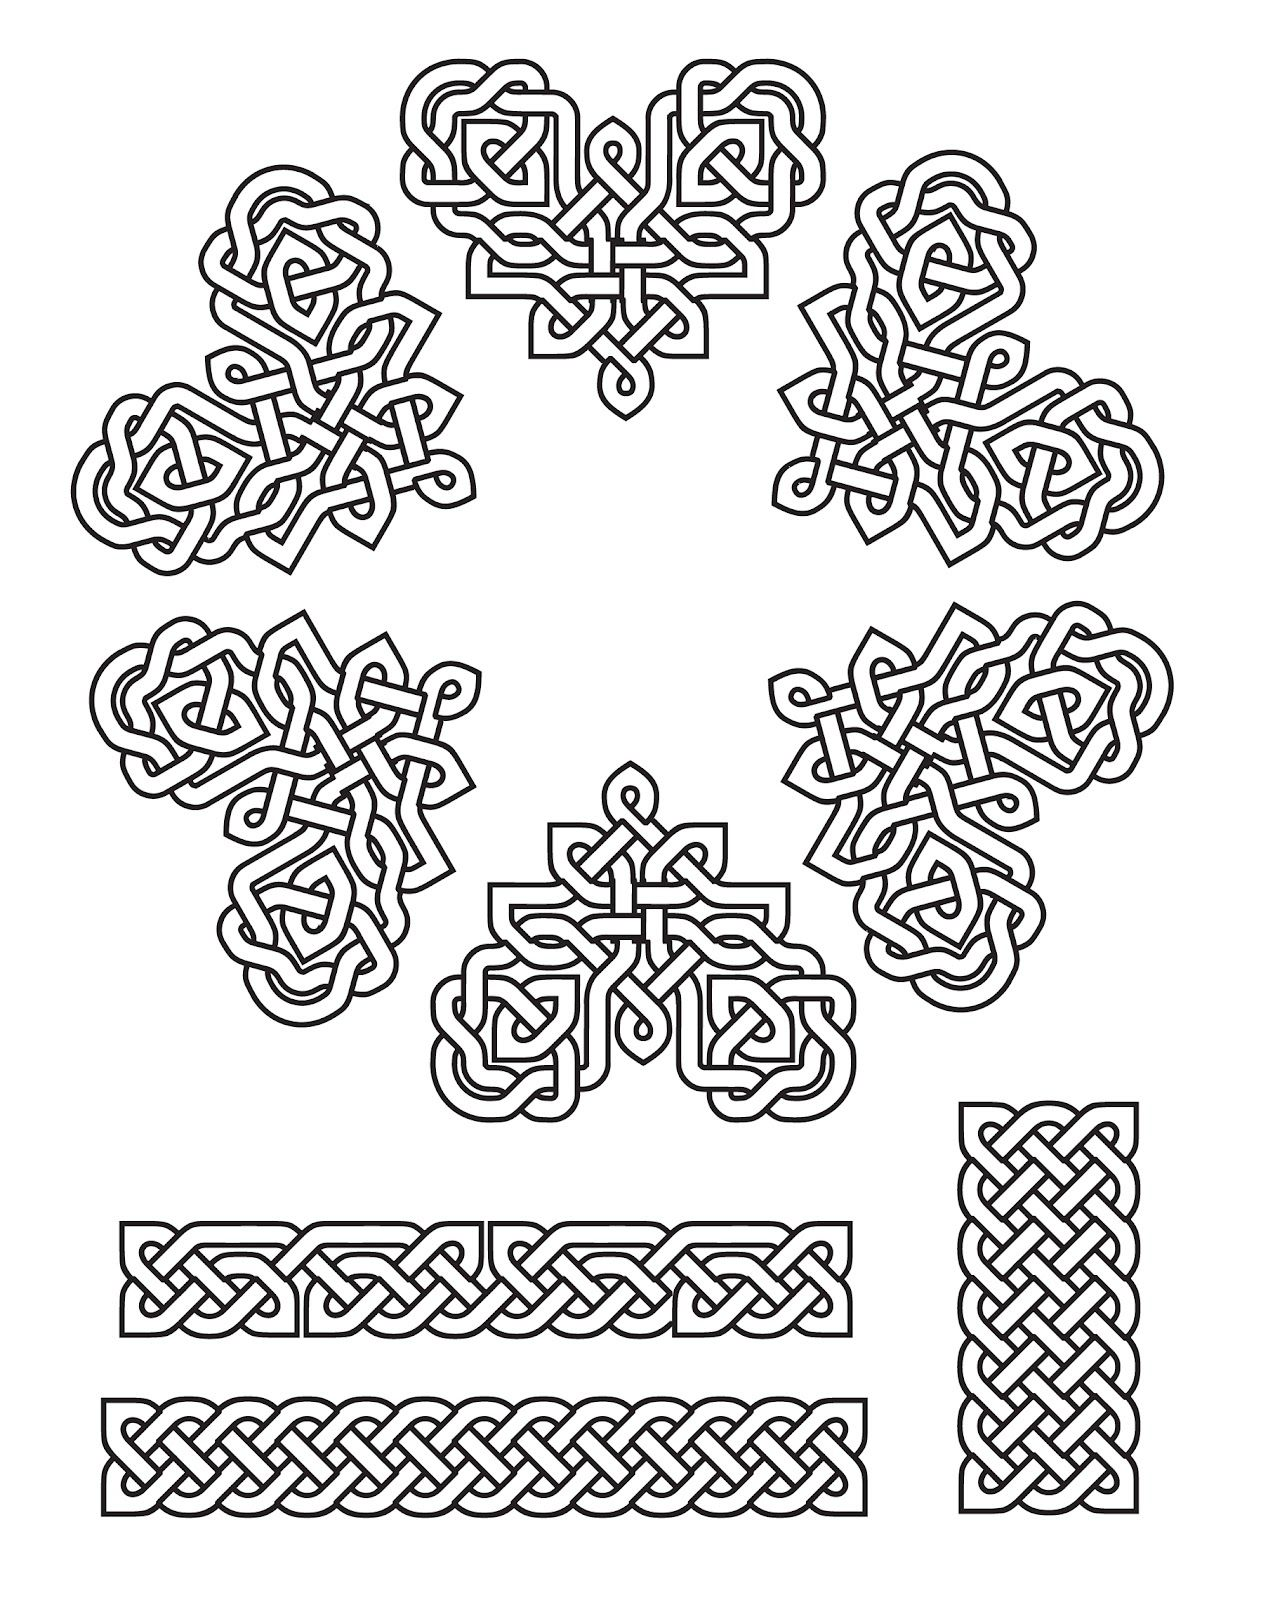 Patterns Created Using Celtic Fonts